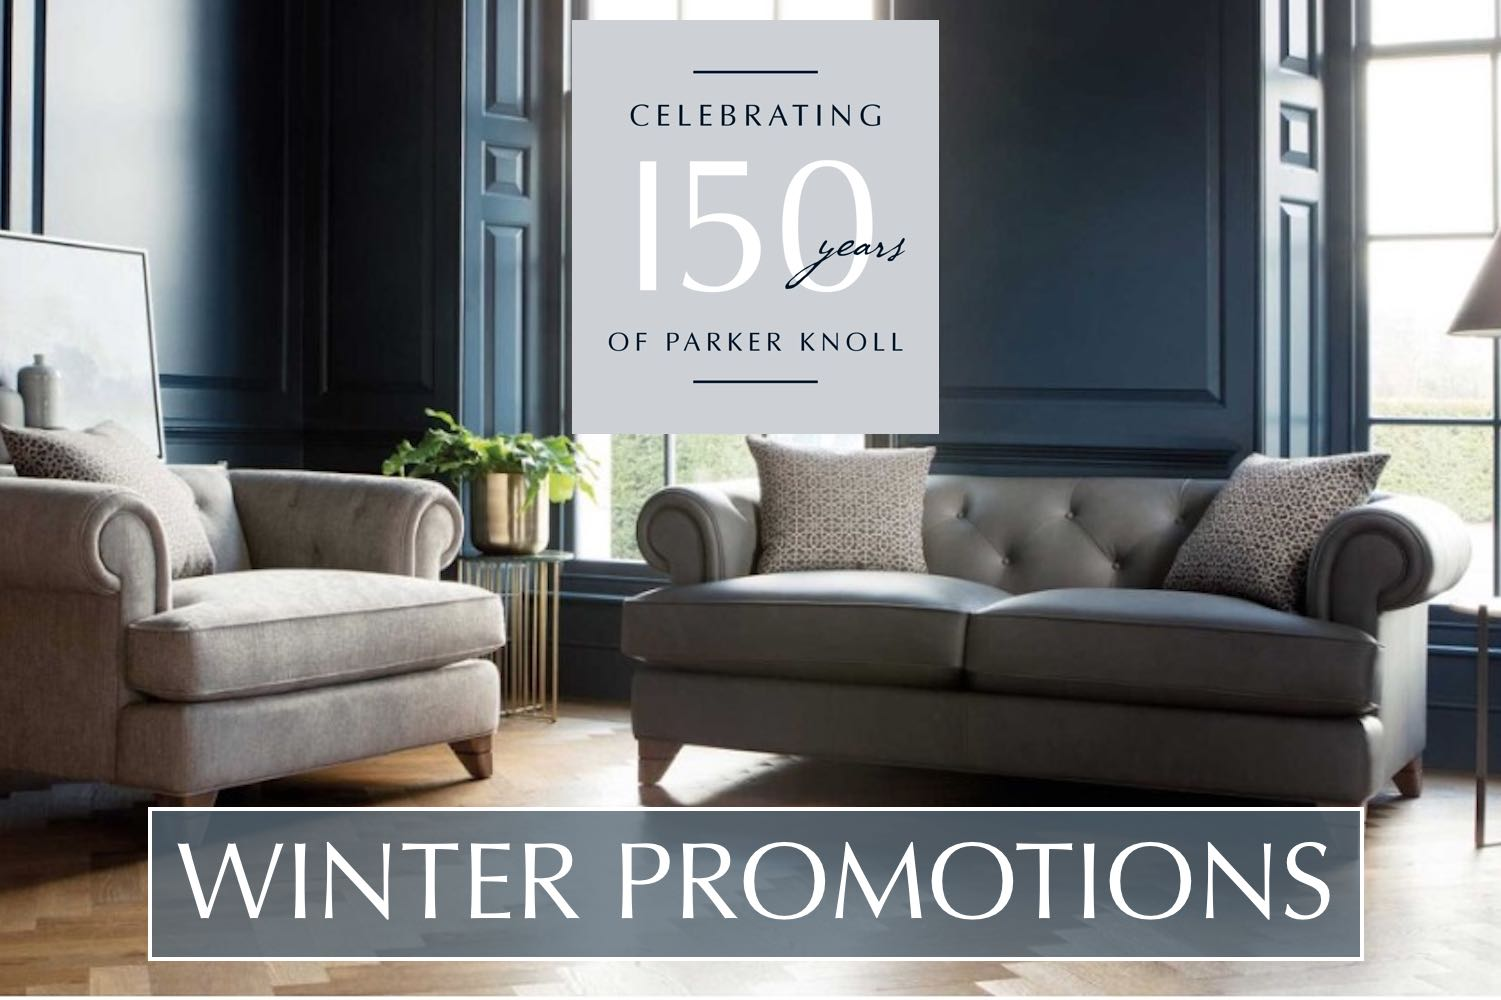 Parker Knoll winter promotions